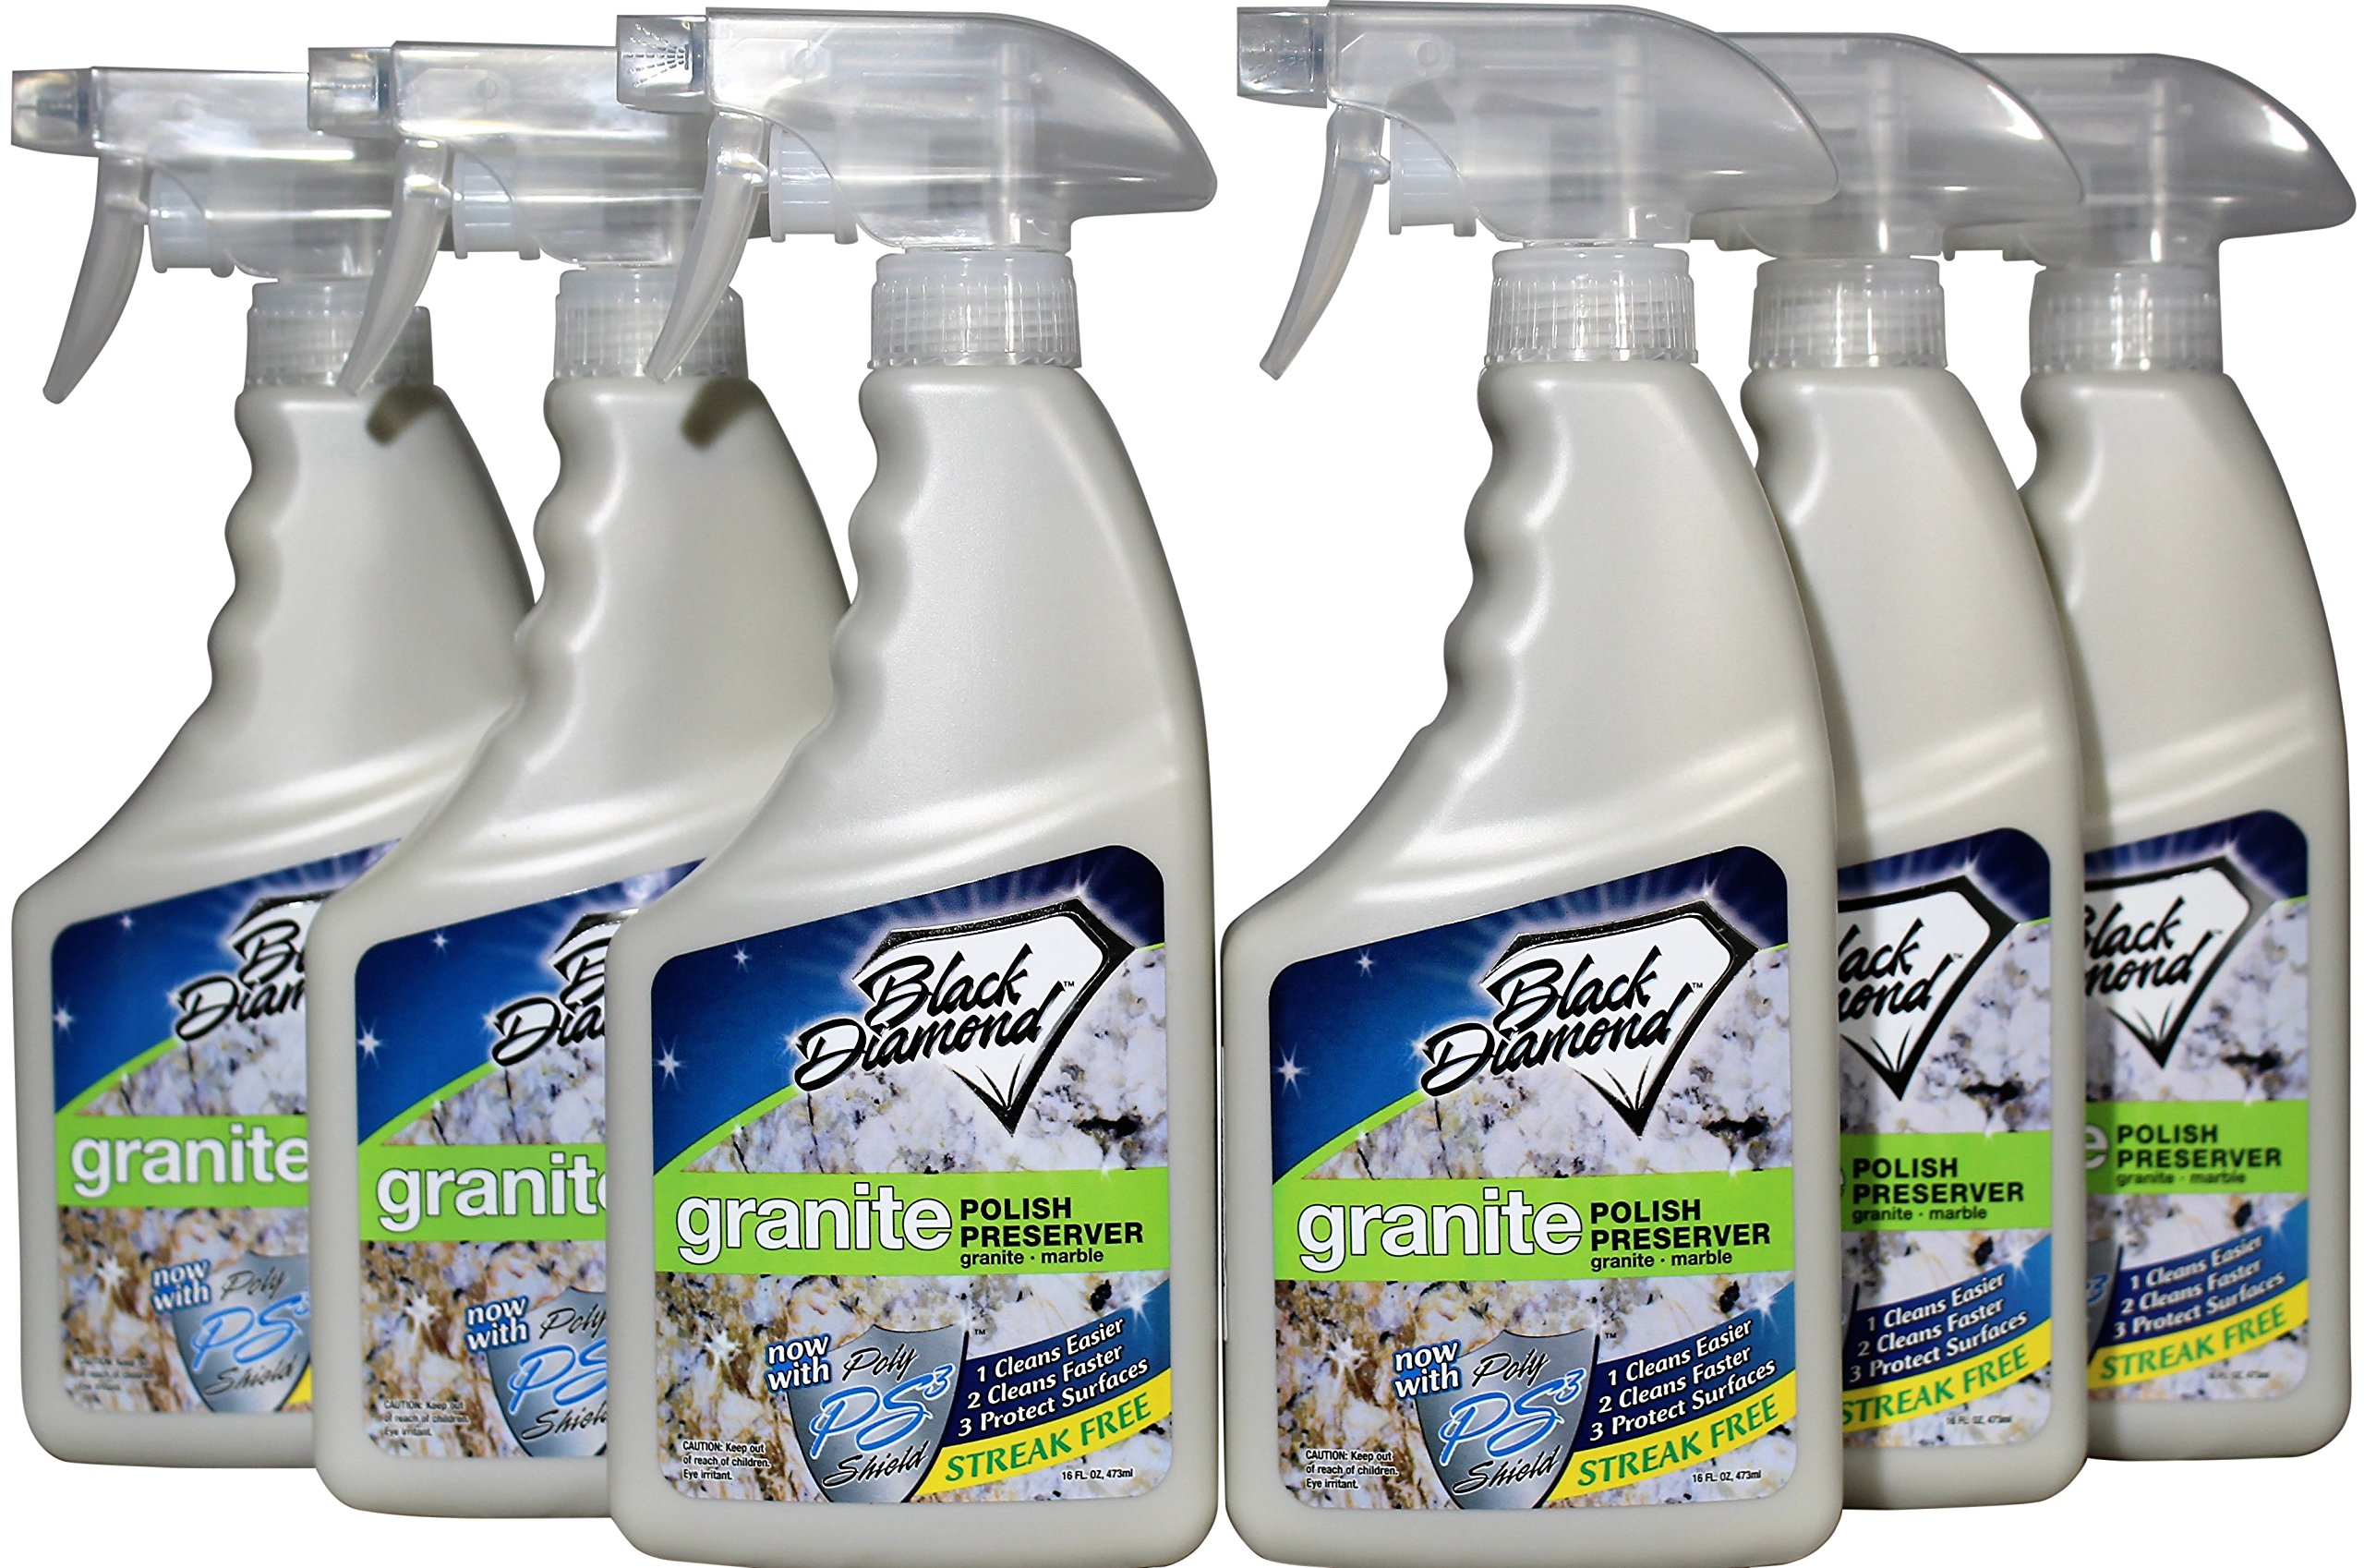 Granite Polish Preserver: Wax & Protectant - Best Protector & Care Product for Easy Maintenance Countertops, Marble - Streak-Free Finish. by Black Diamond Stoneworks